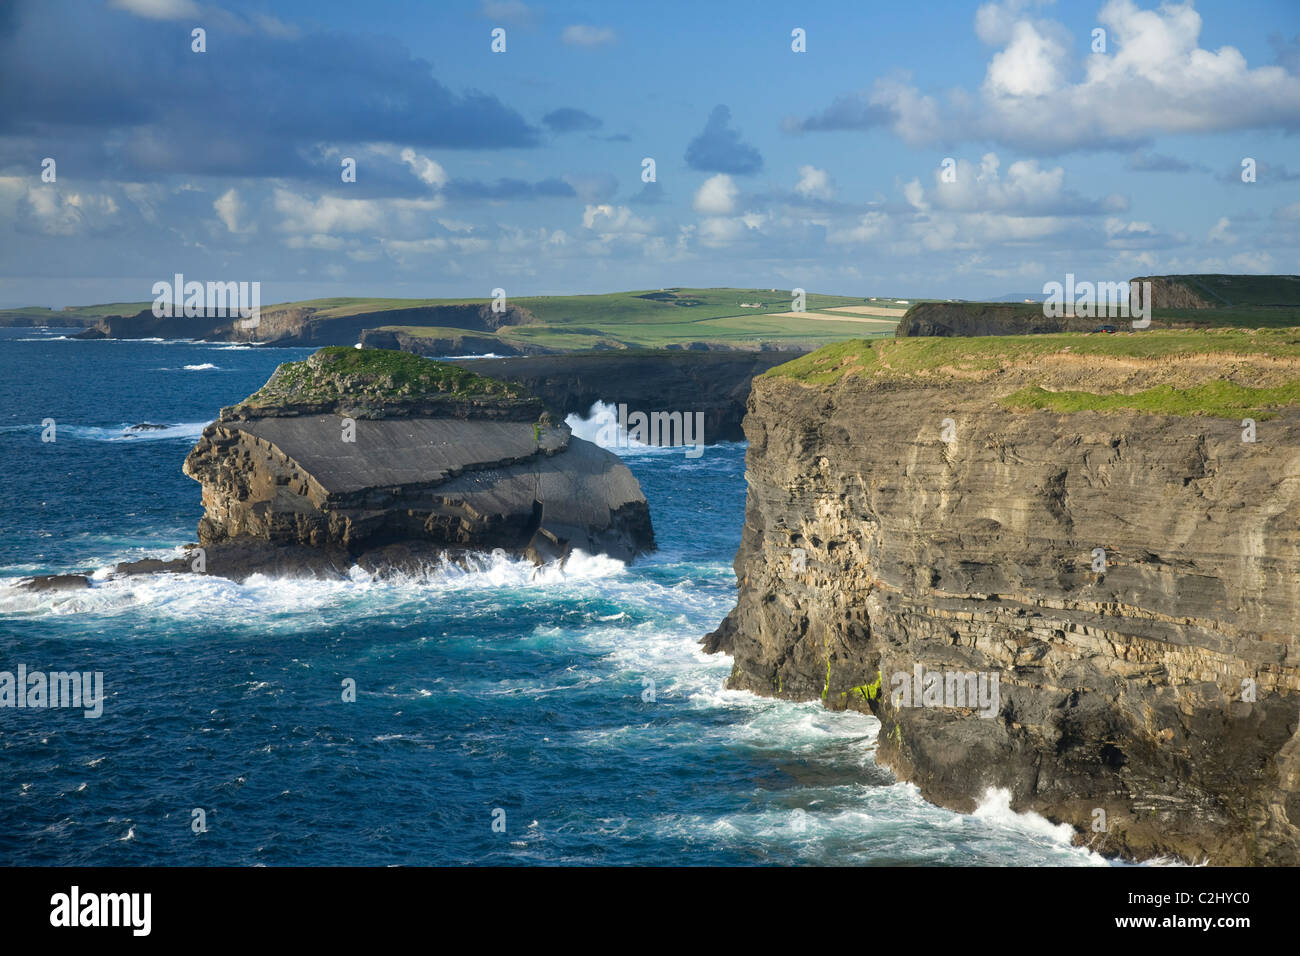 Atlantic cliffs and coastline near Loop Head, County Clare, Ireland. - Stock Image